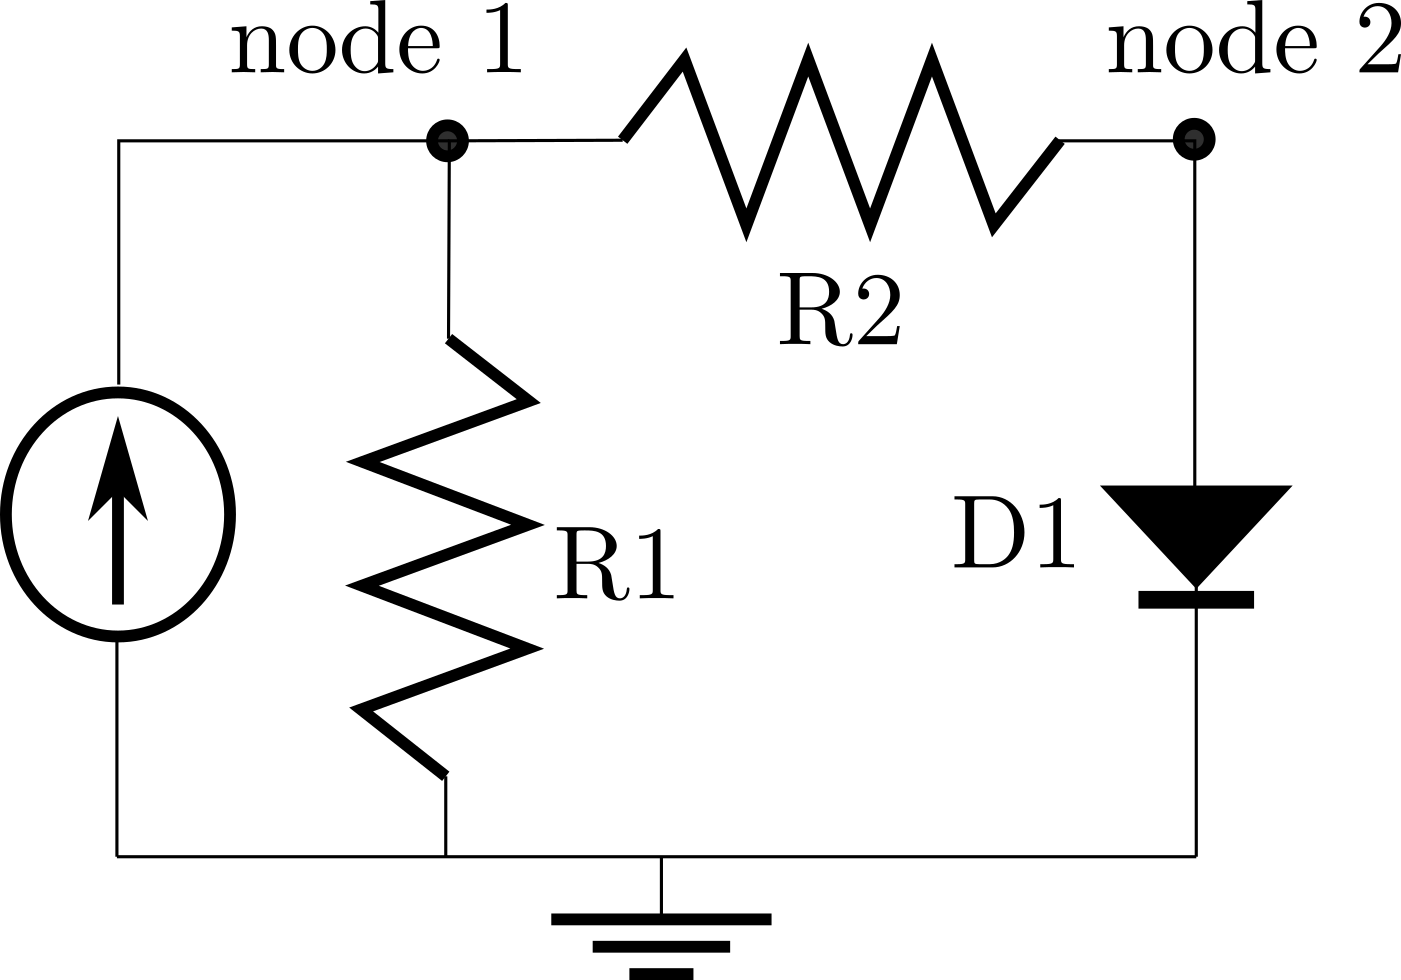 Converging an Implicit Model: Nonlinear circuit analysis